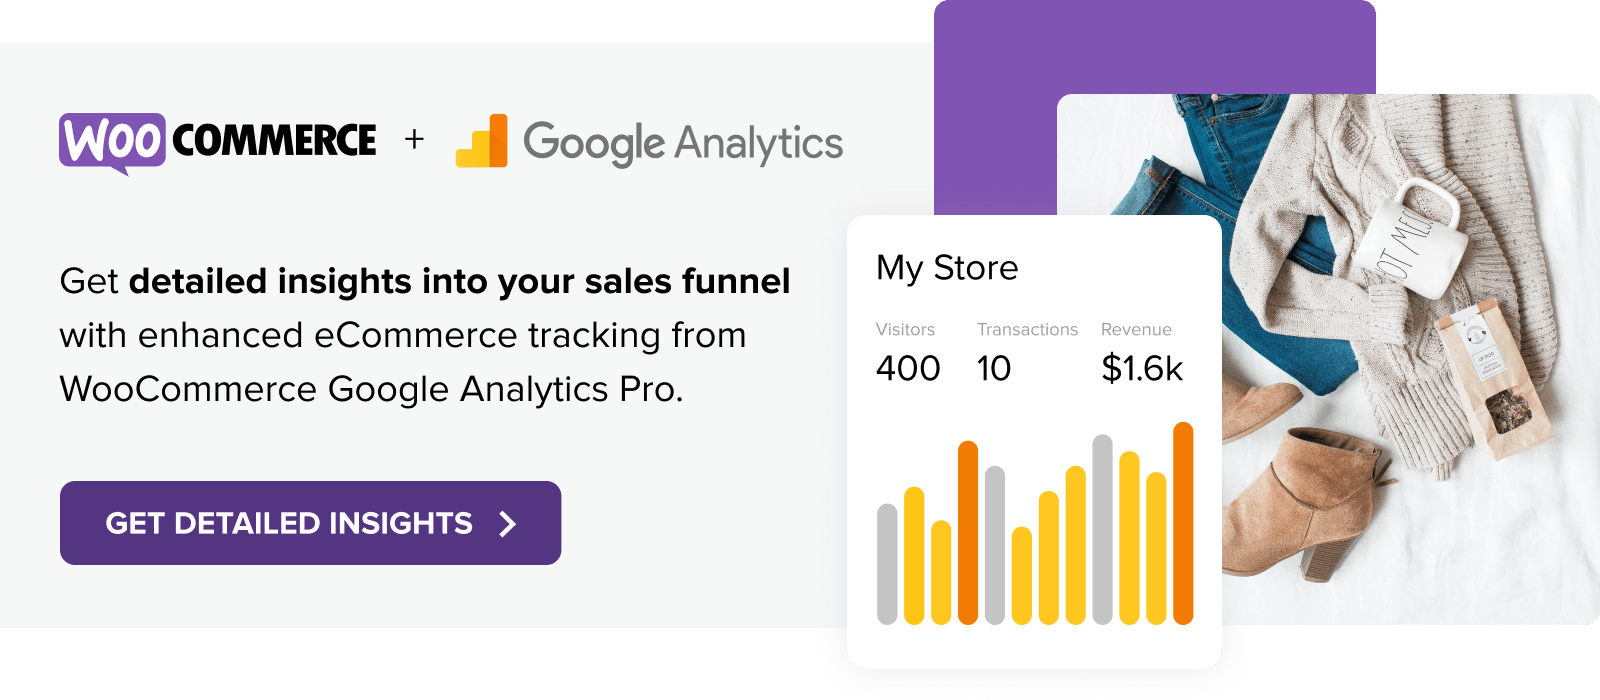 Get detailed insights into you sales funnel with Google Analytics Pro